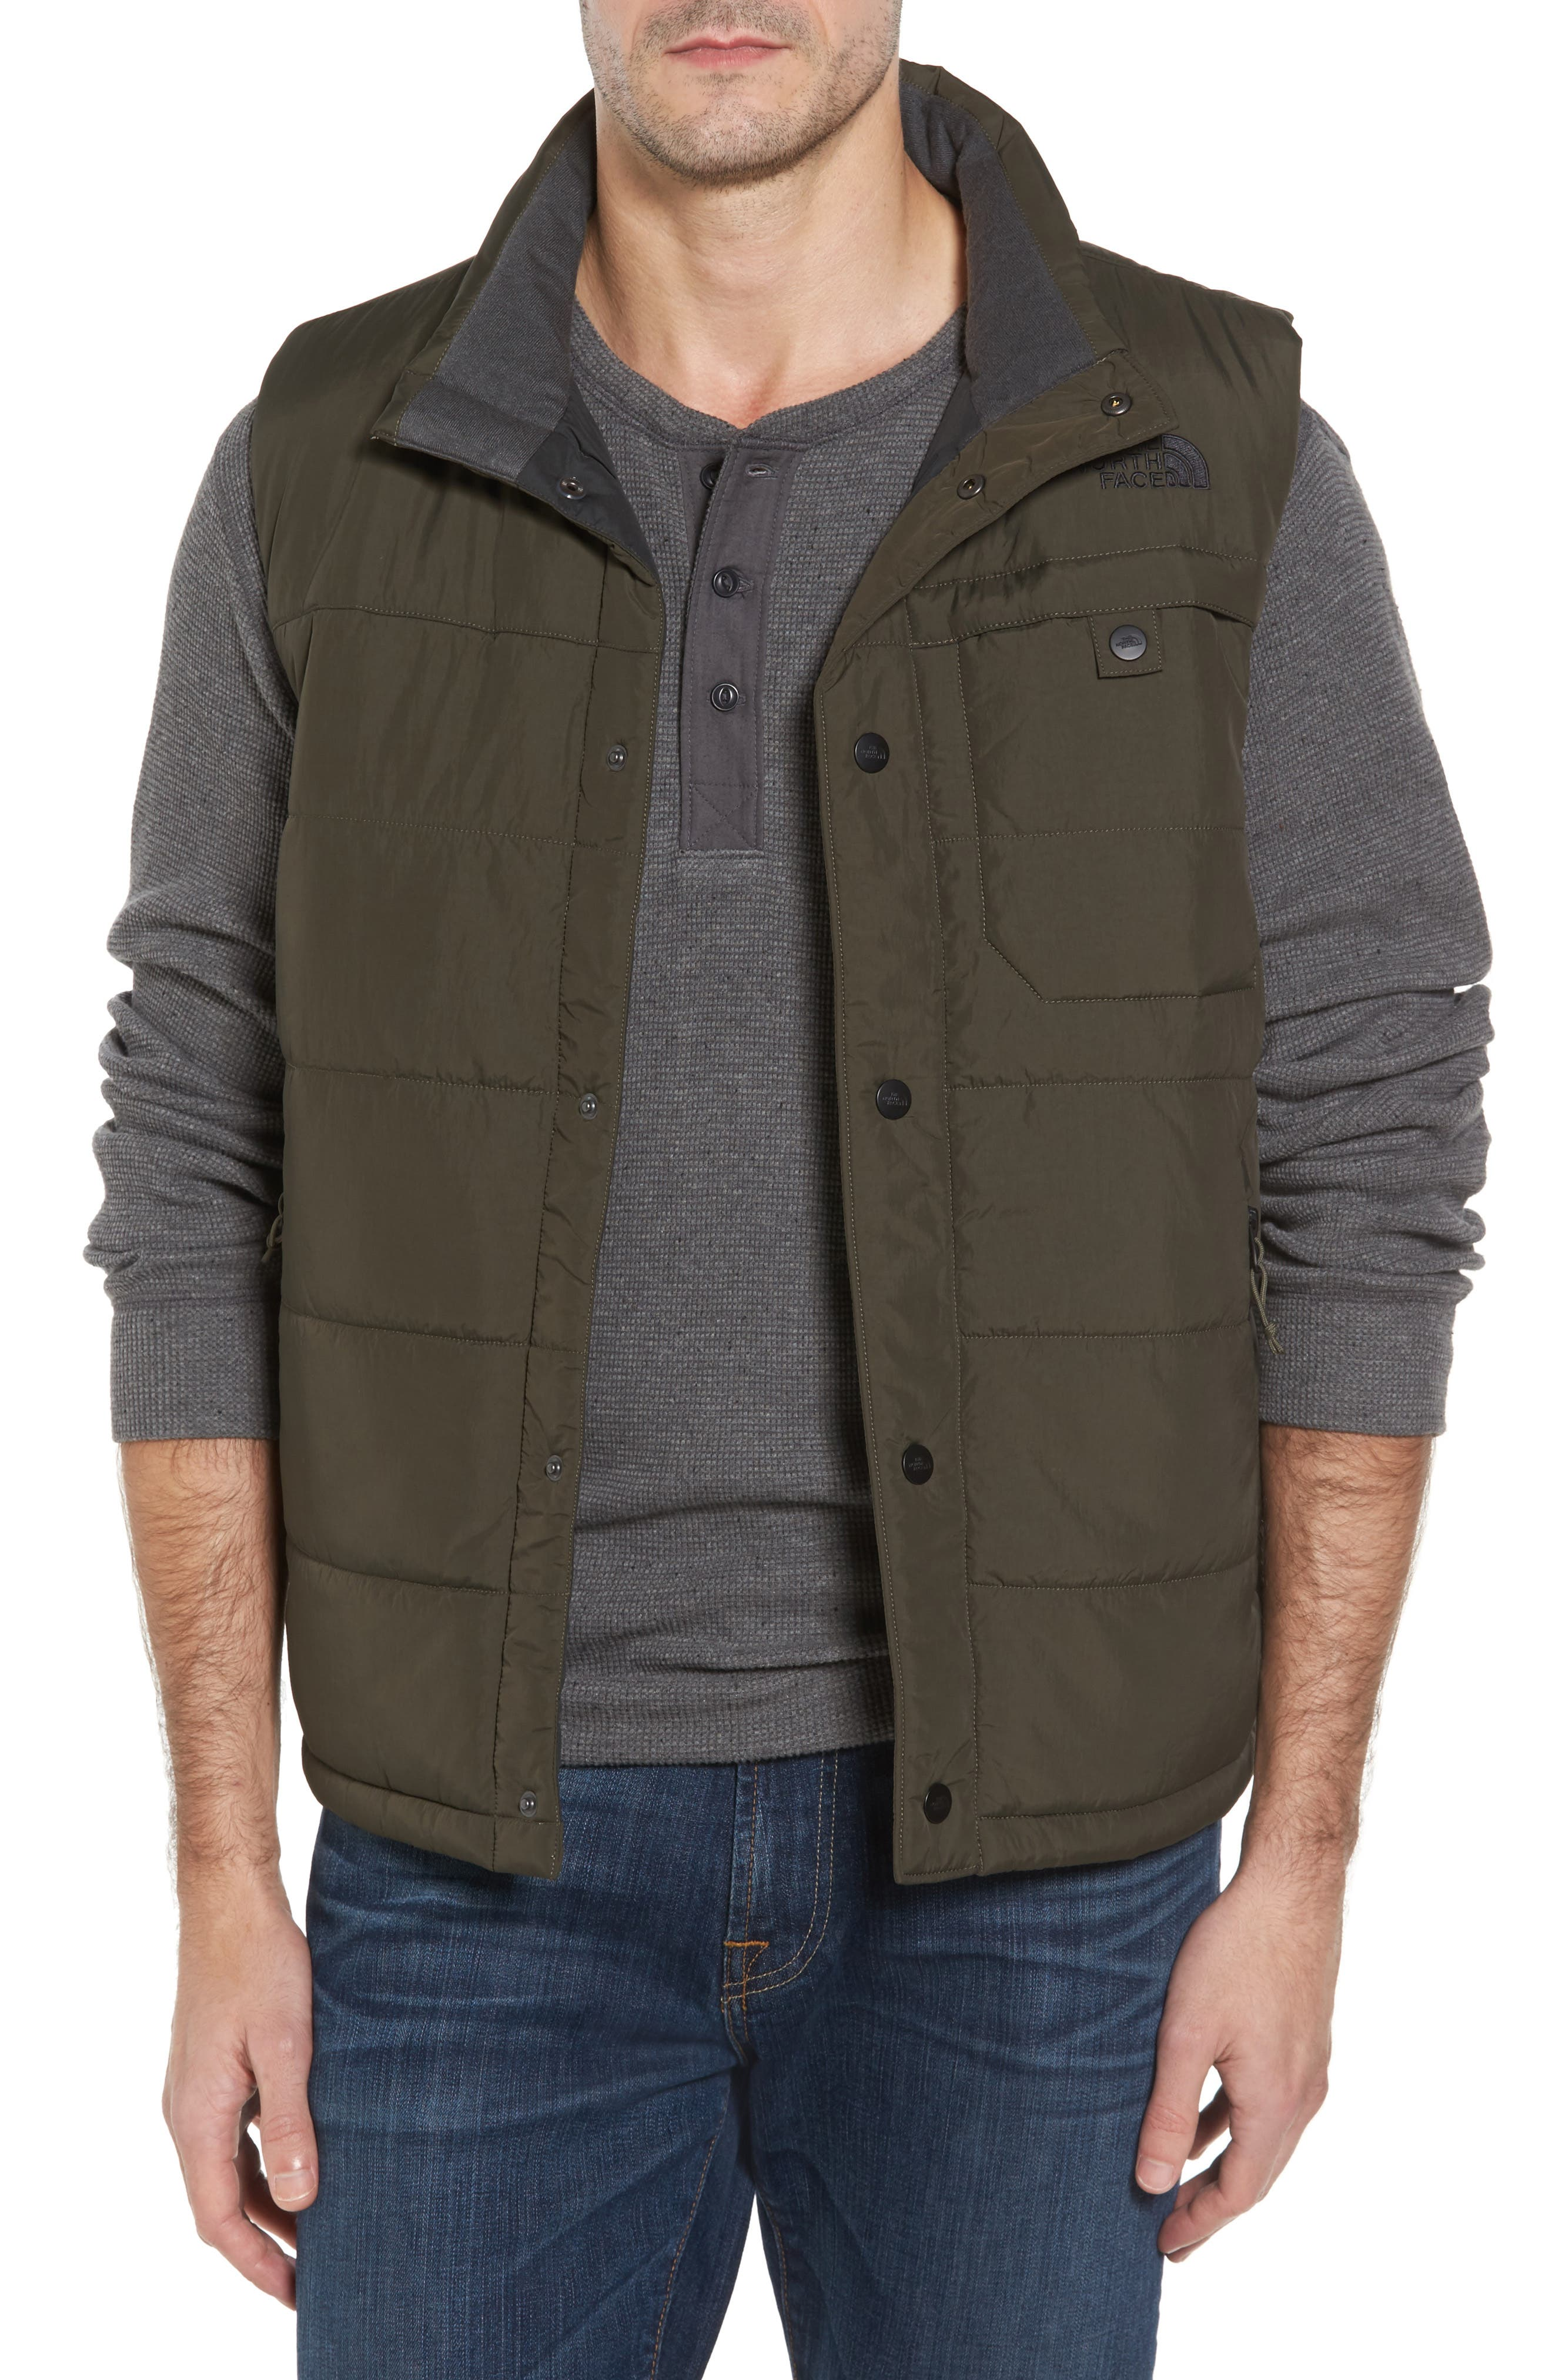 Alternate Image 1 Selected - The North Face Harway Heatseeker Insulated Vest